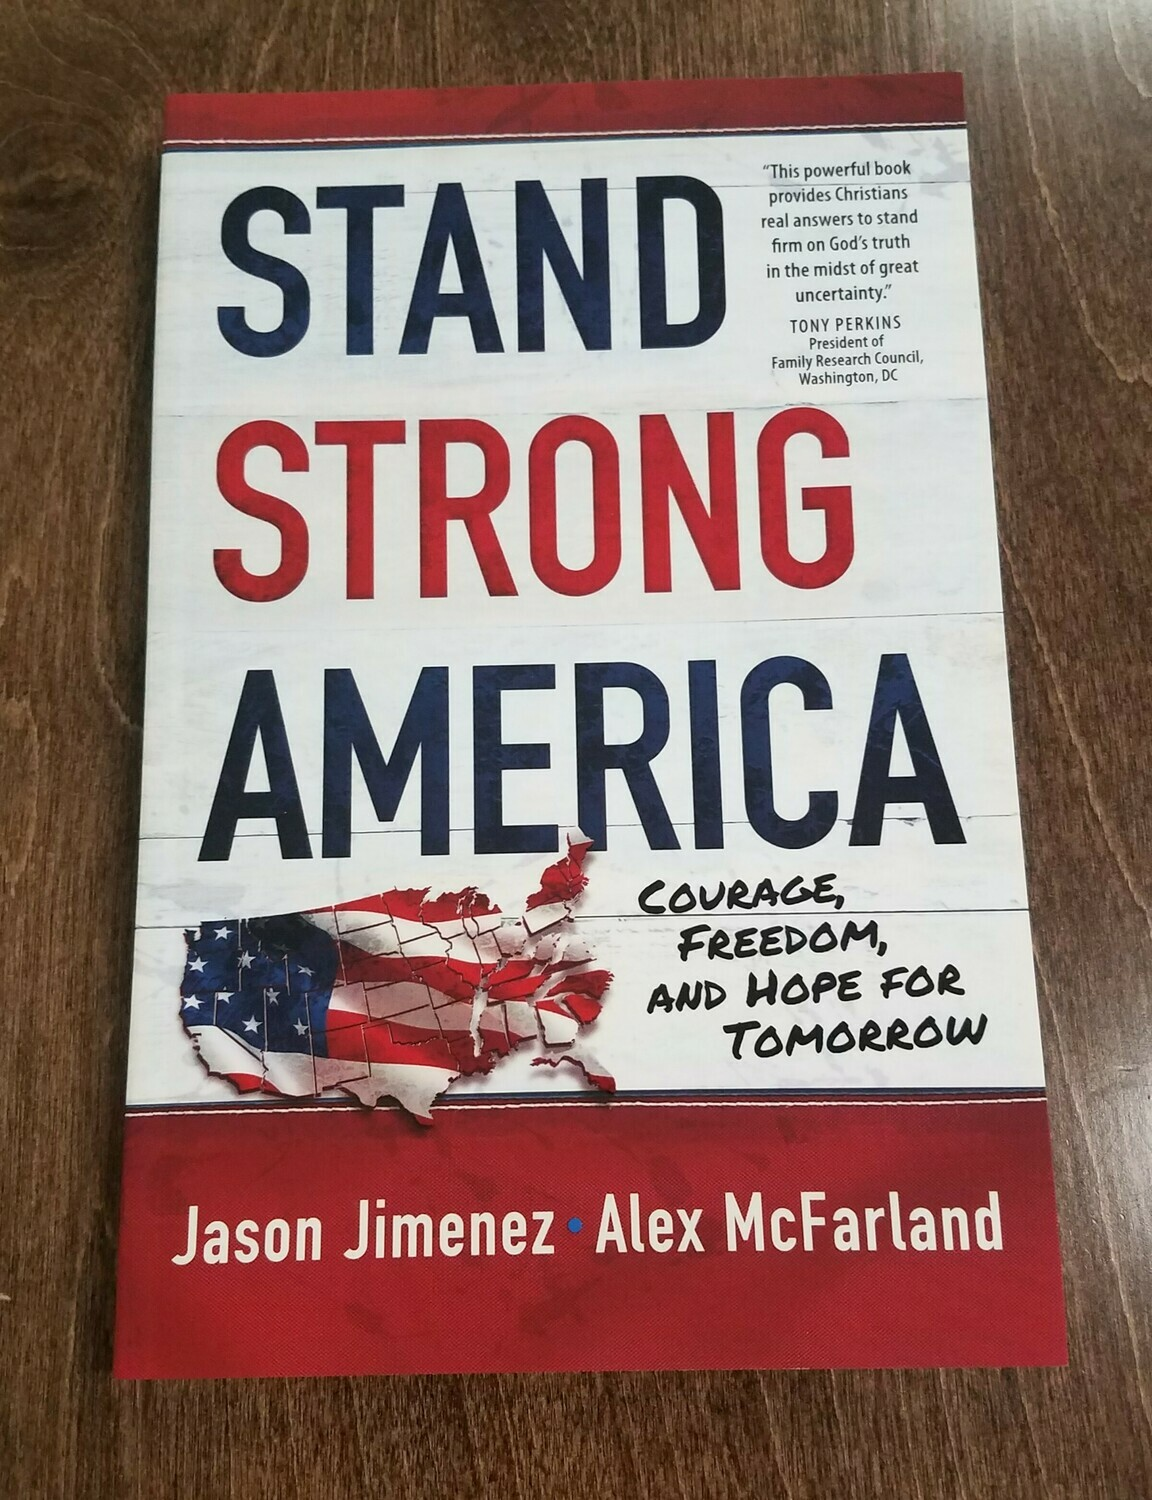 Stand Strong America by Jason Jimenez and Alex McFarland